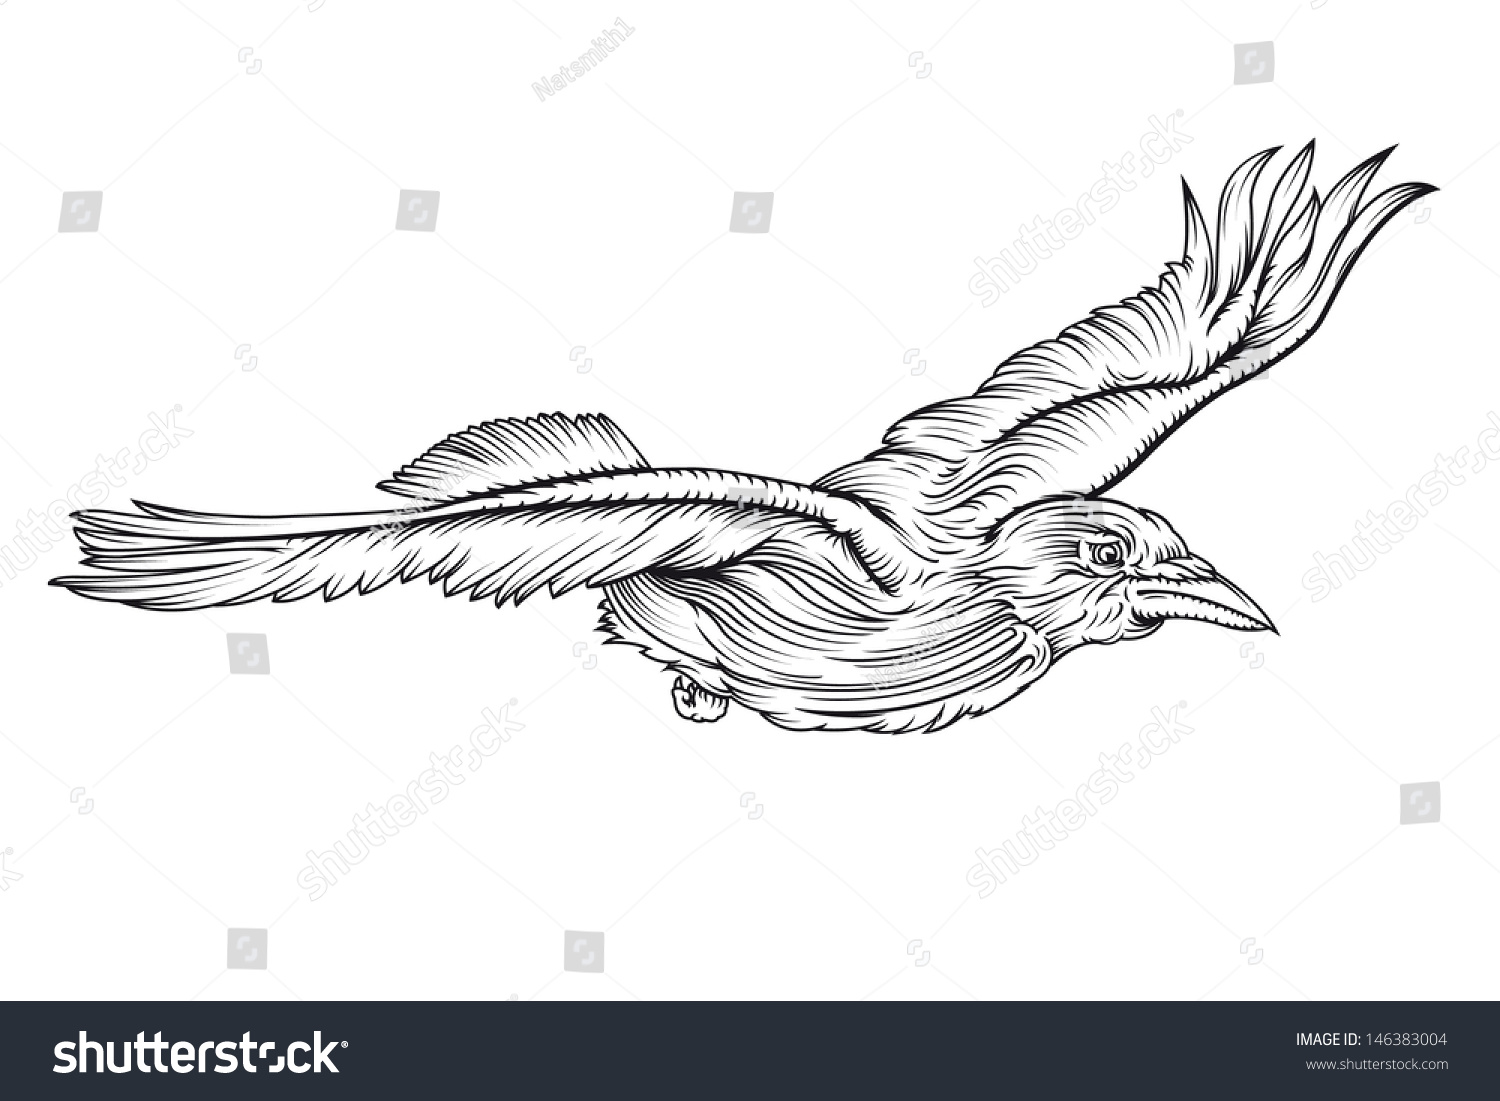 Line Drawing Editor : Vector line drawing of a crow flying